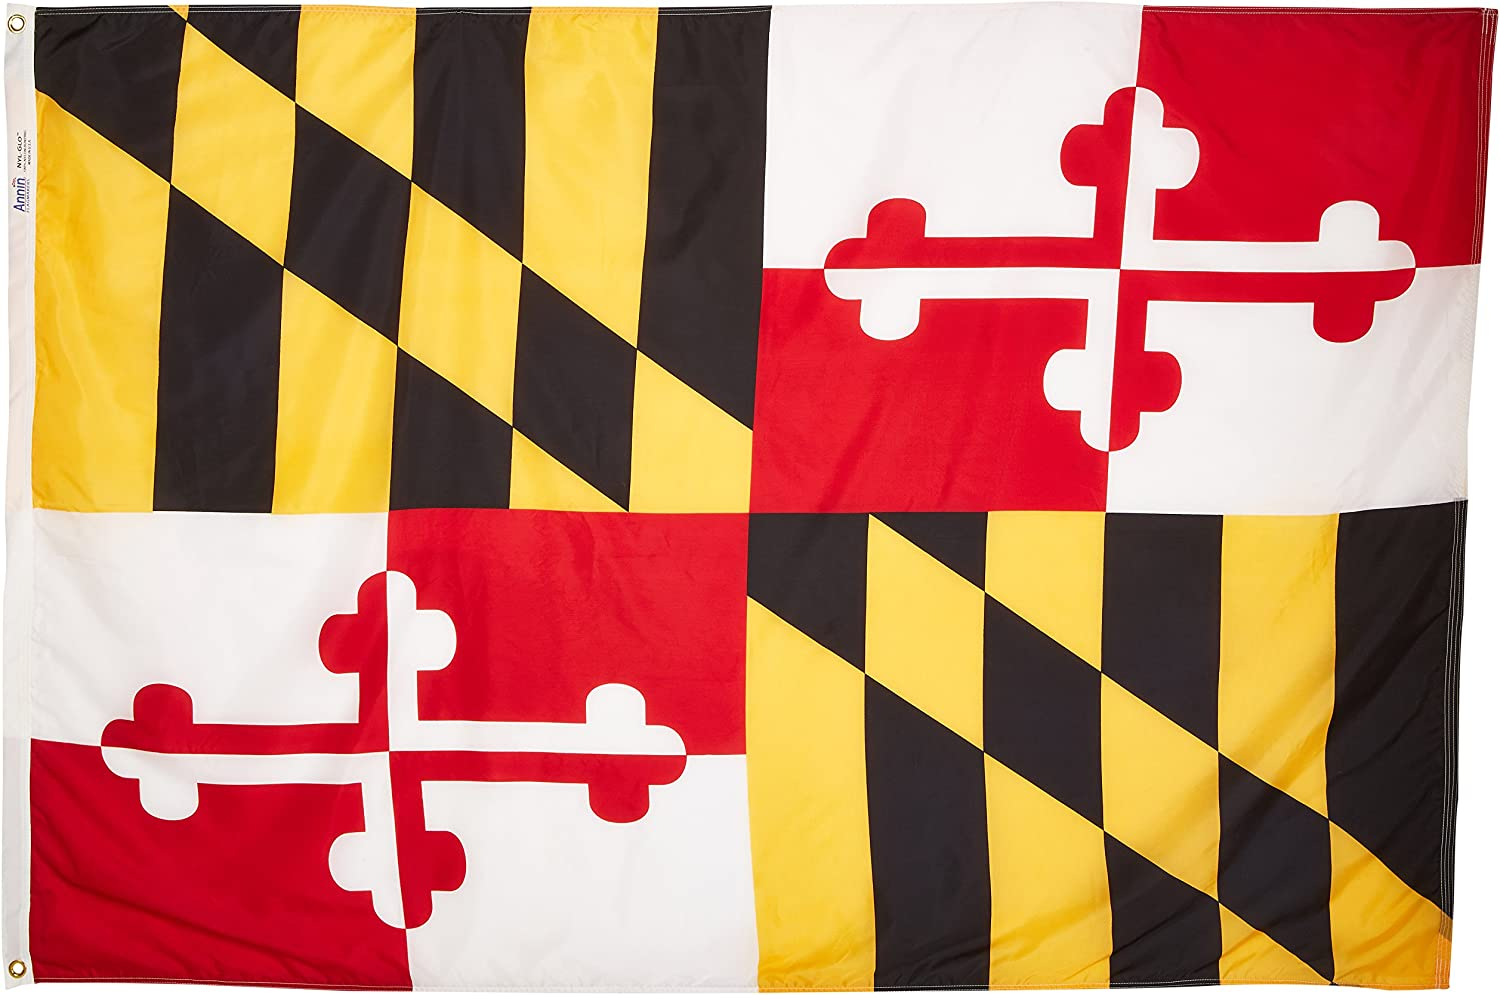 Annin Flagmakers Model 142370 Maryland State Flag 4x6 ft. Nylon SolarGuard Nyl-Glo 100% Made in USA to Official State Design Specifications.